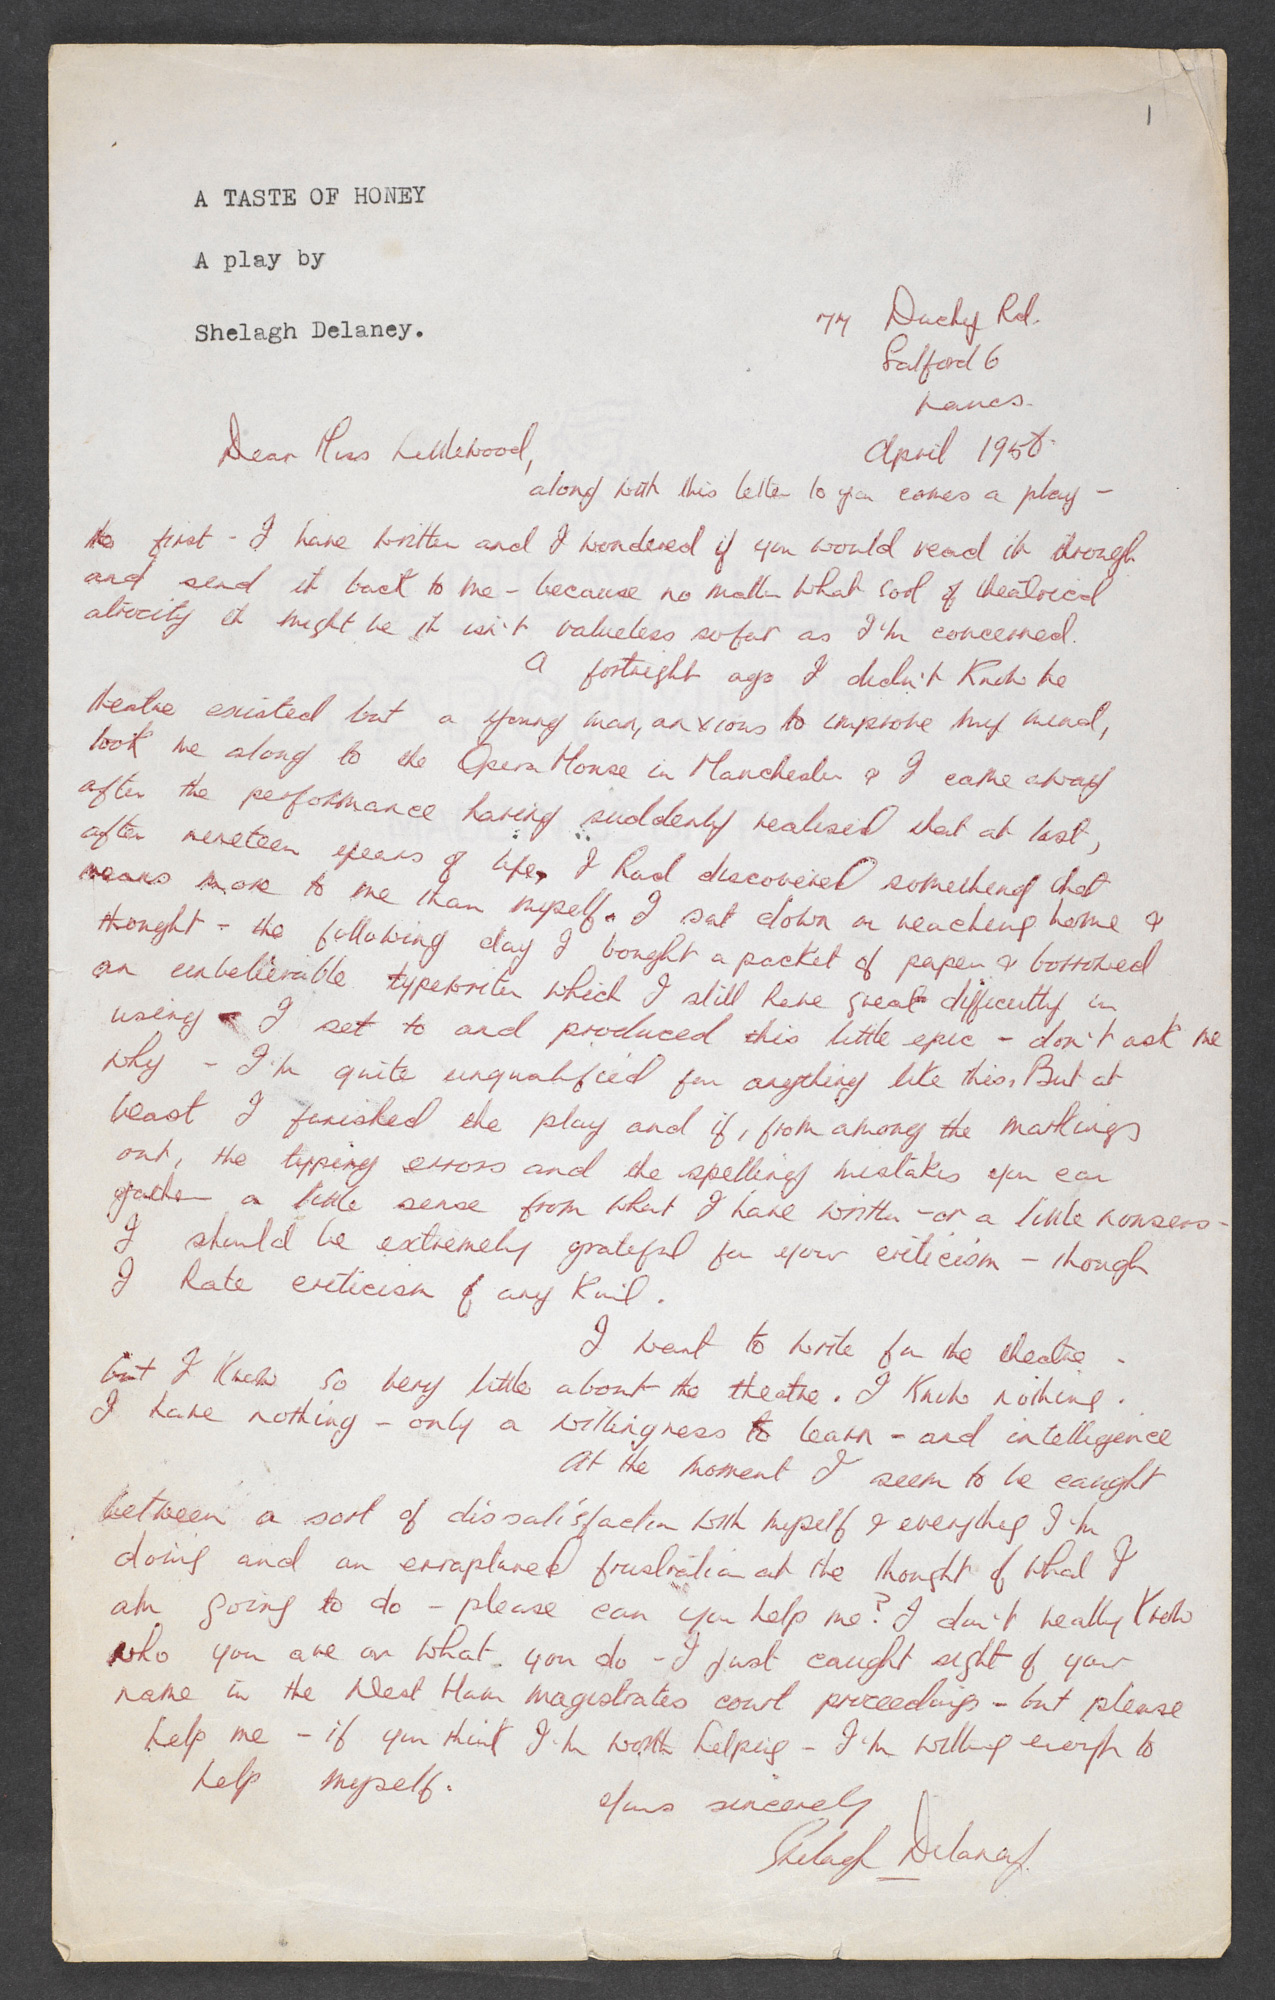 Letter from Shelagh Delaney to Joan Littlewood, 1958